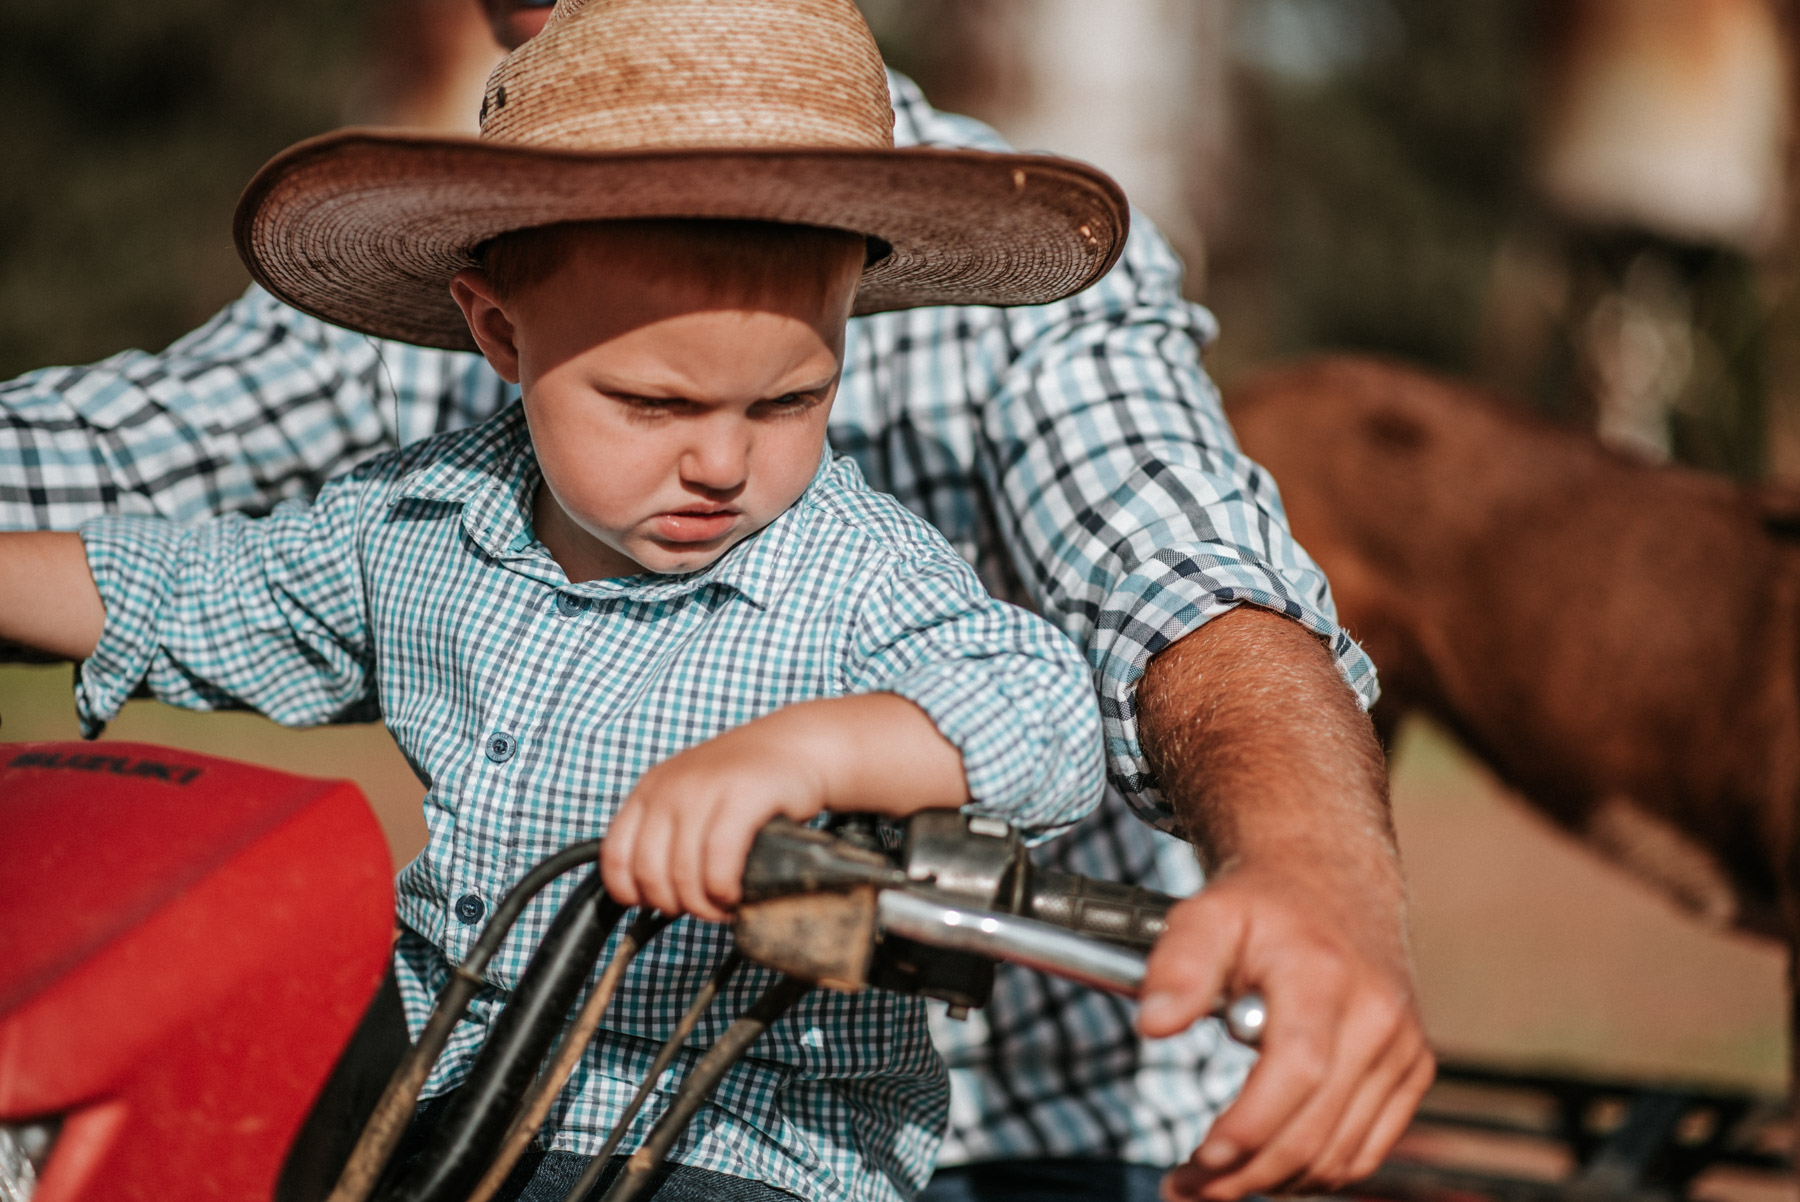 country_queensland_photography_scotts-23.jpg